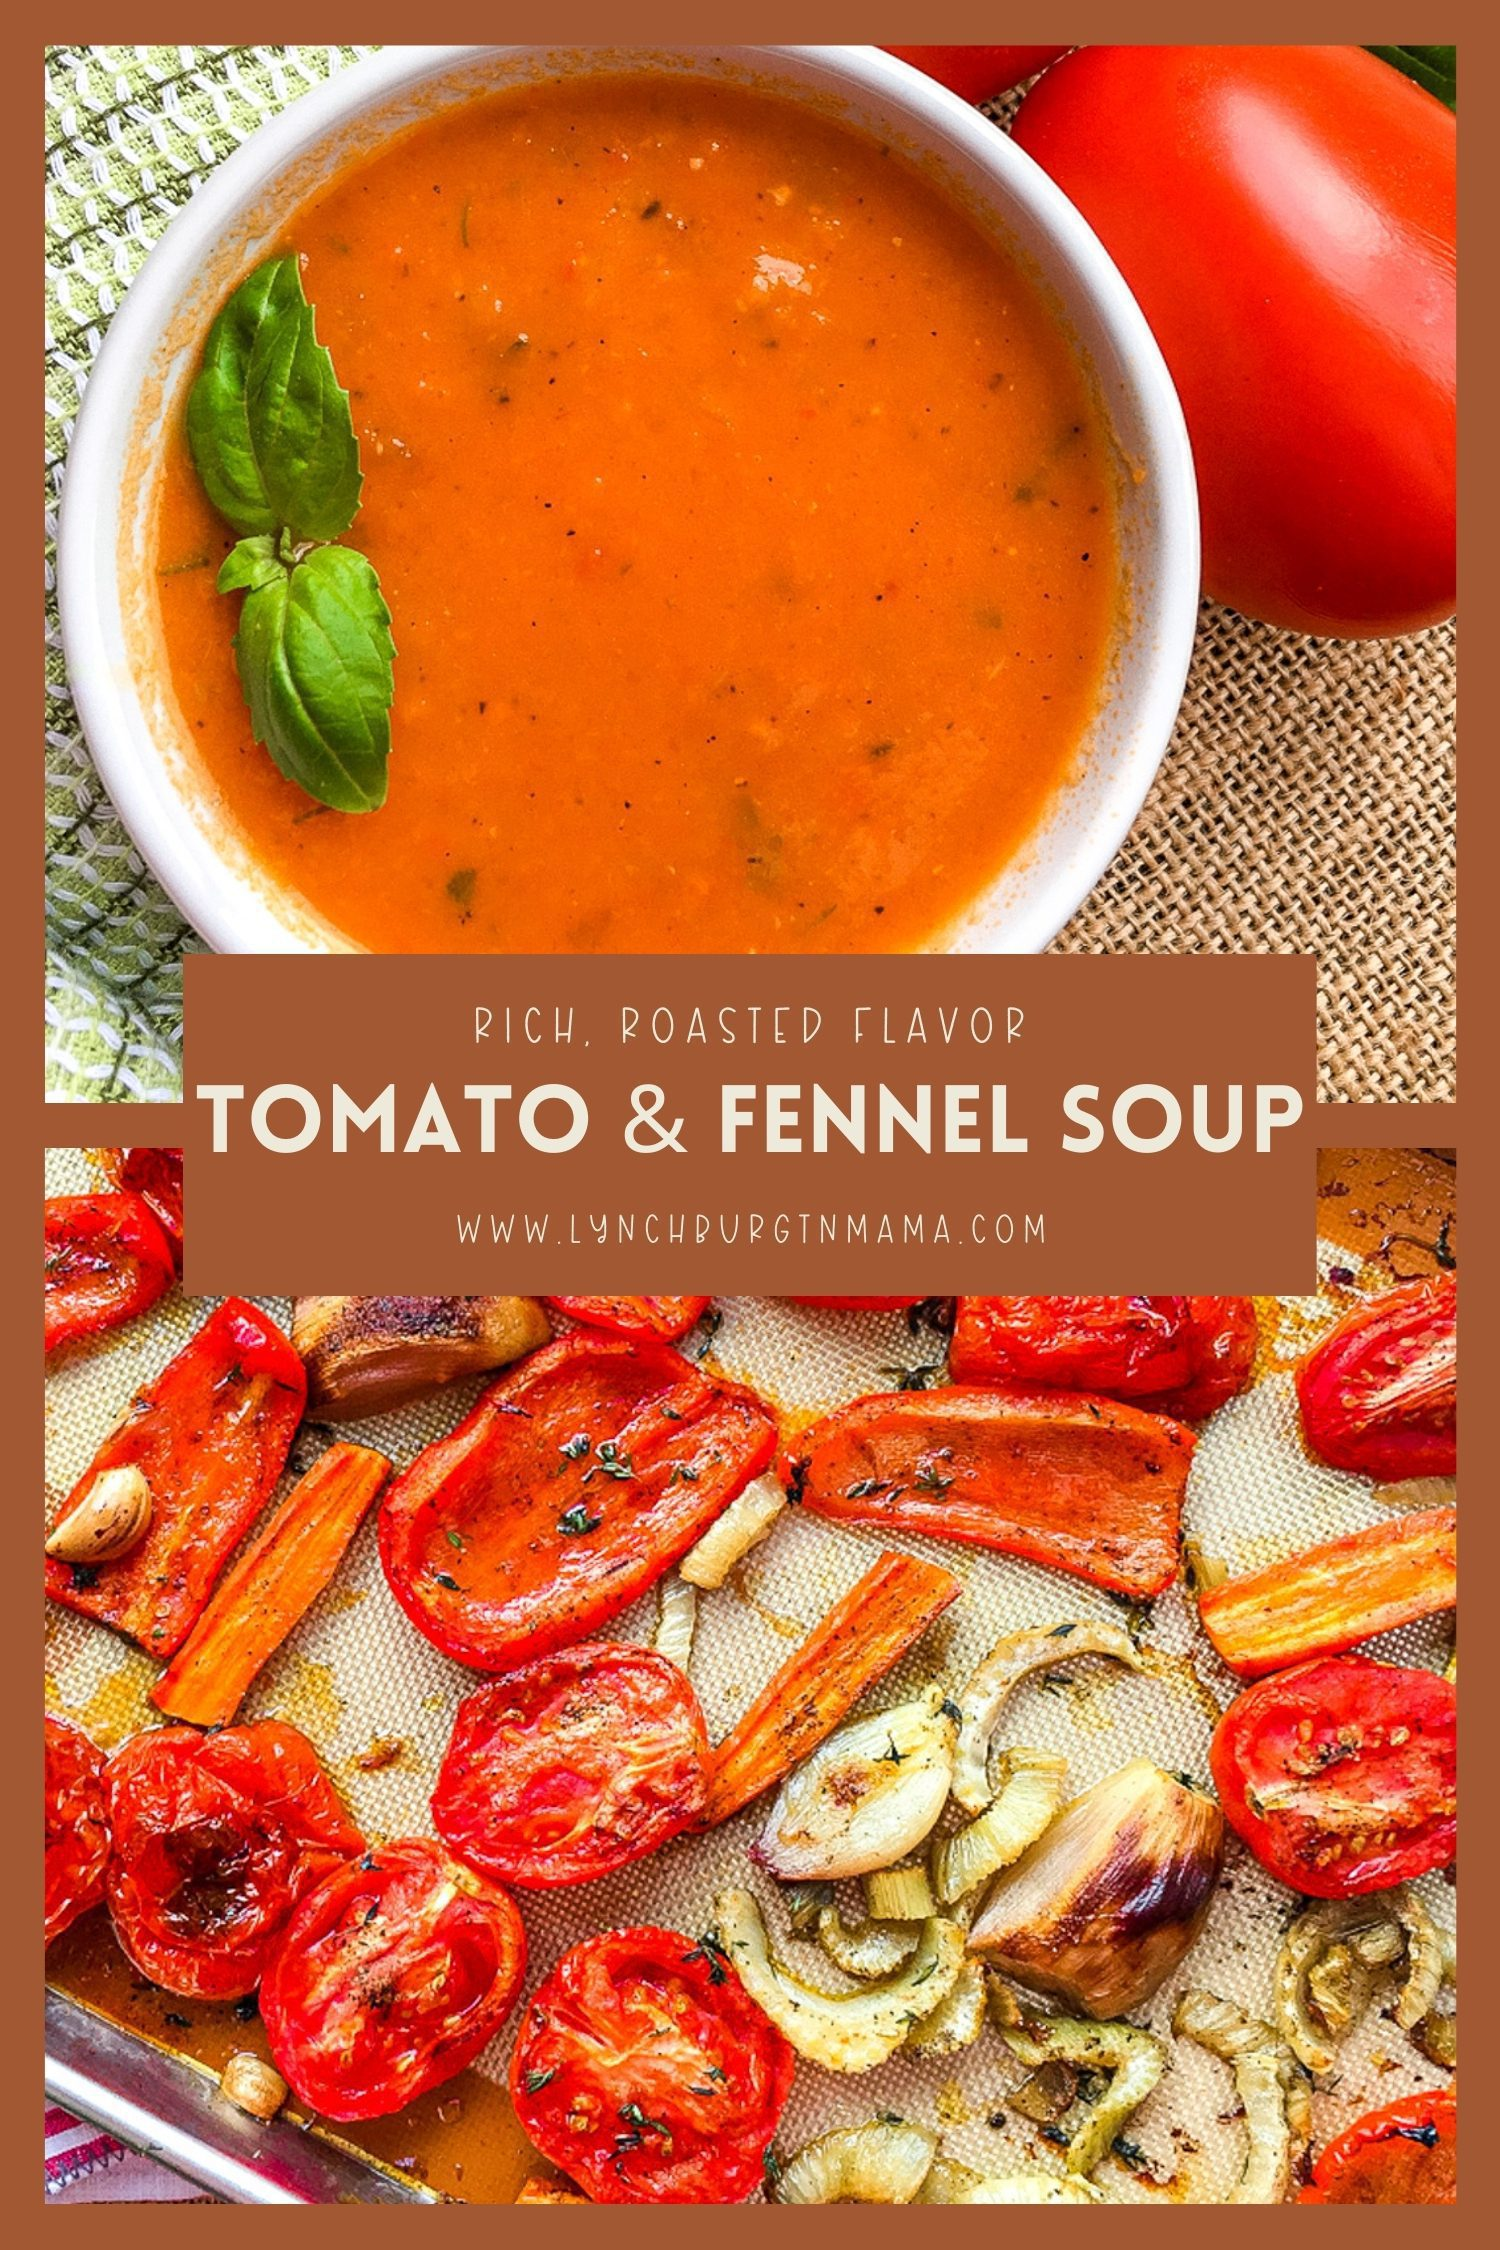 Upgrade traditional tomato soup to this rich, Roasted Tomato and Fennel Soup. This robust, heartwarming soup is exactly what a cold day needs!